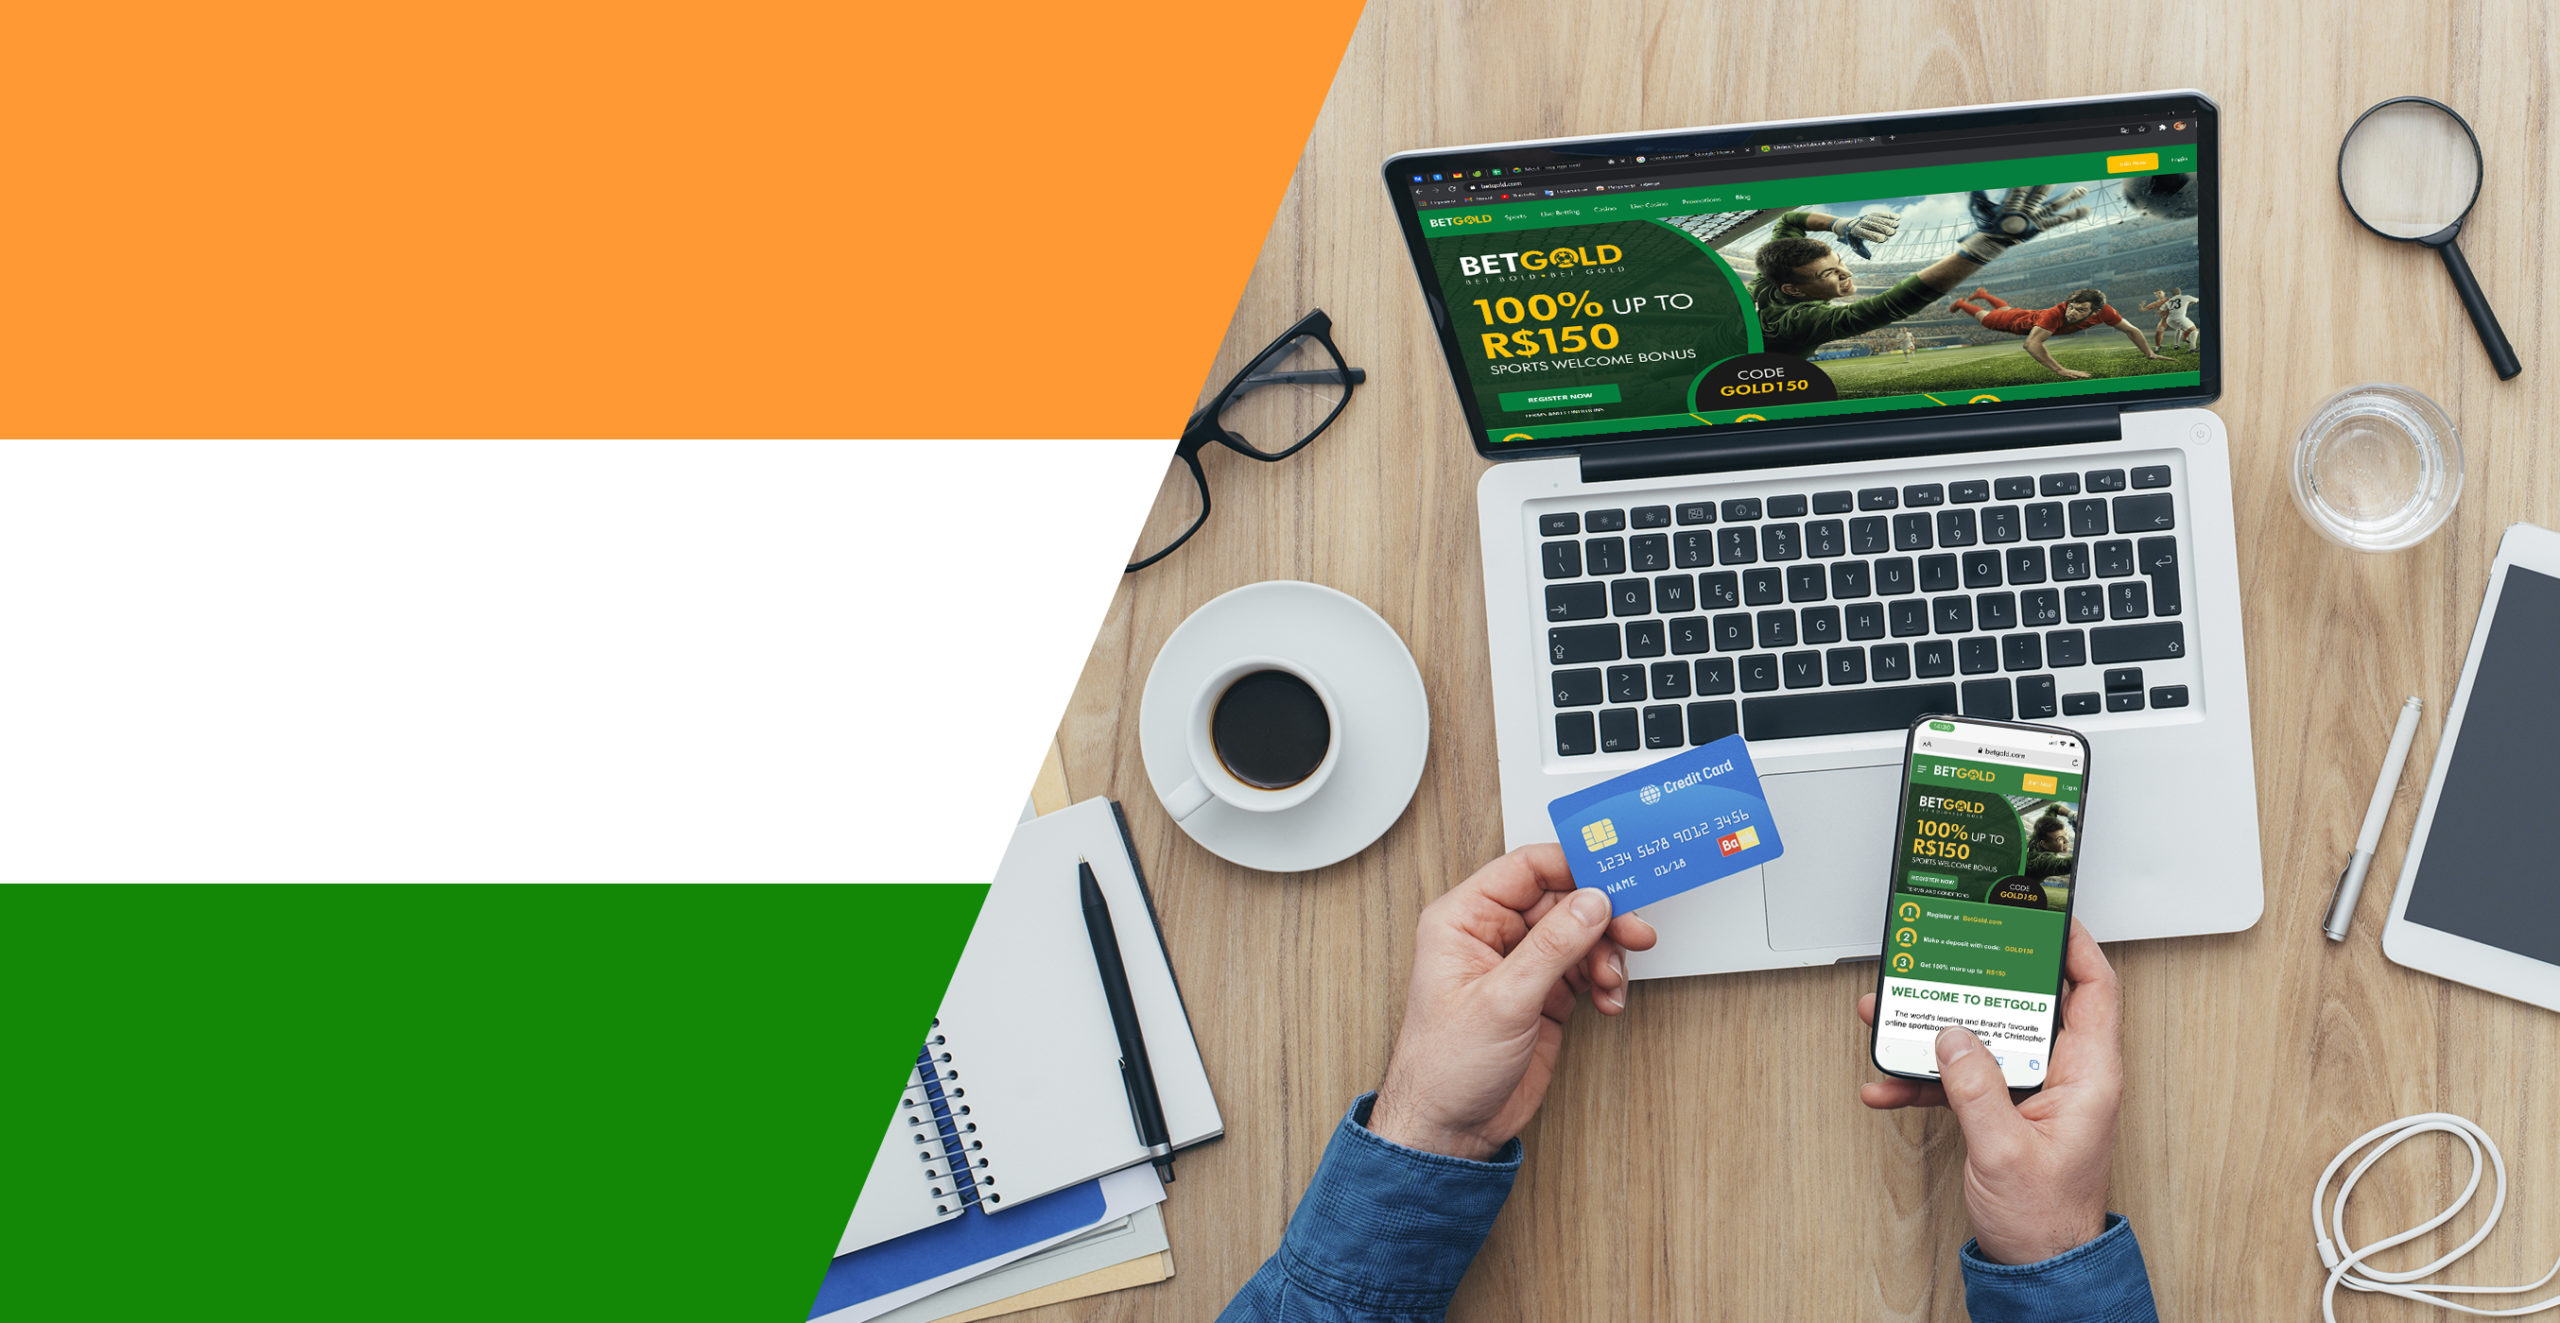 Still there are many of popular payment methods in India.